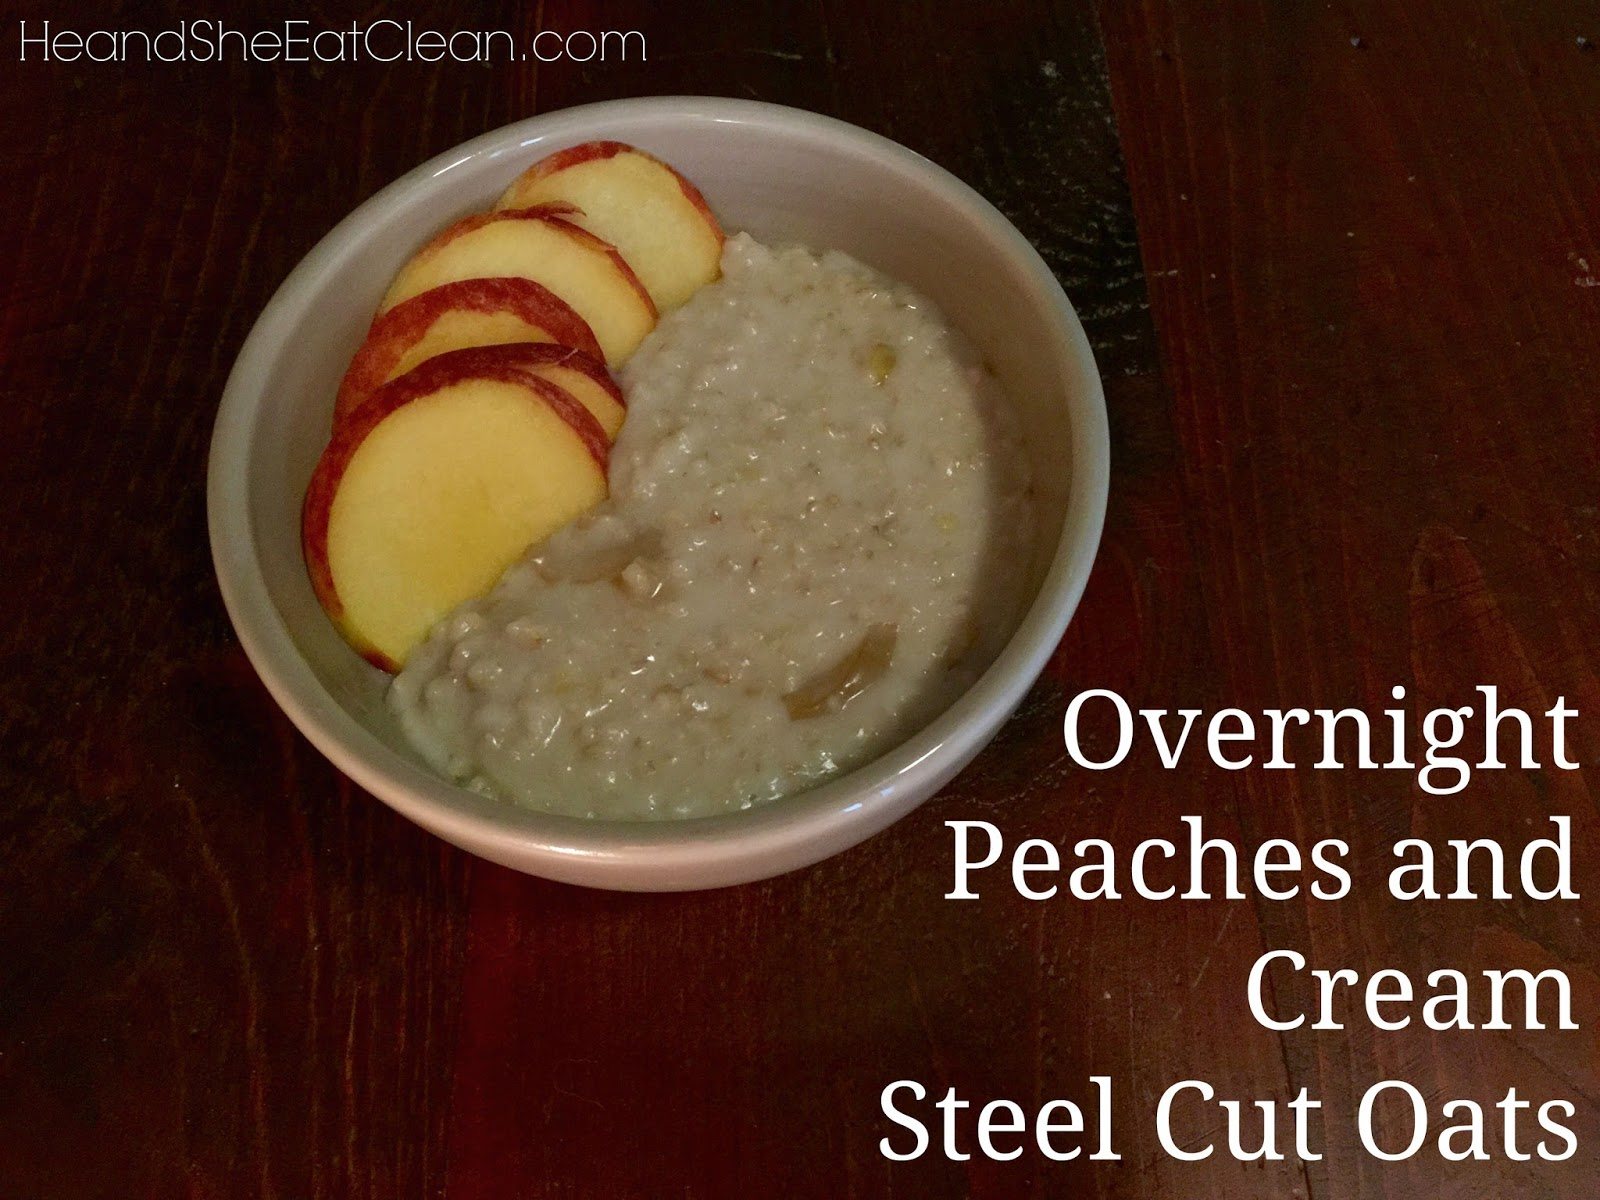 Overnight Peaches and Cream Steel Cut Oats